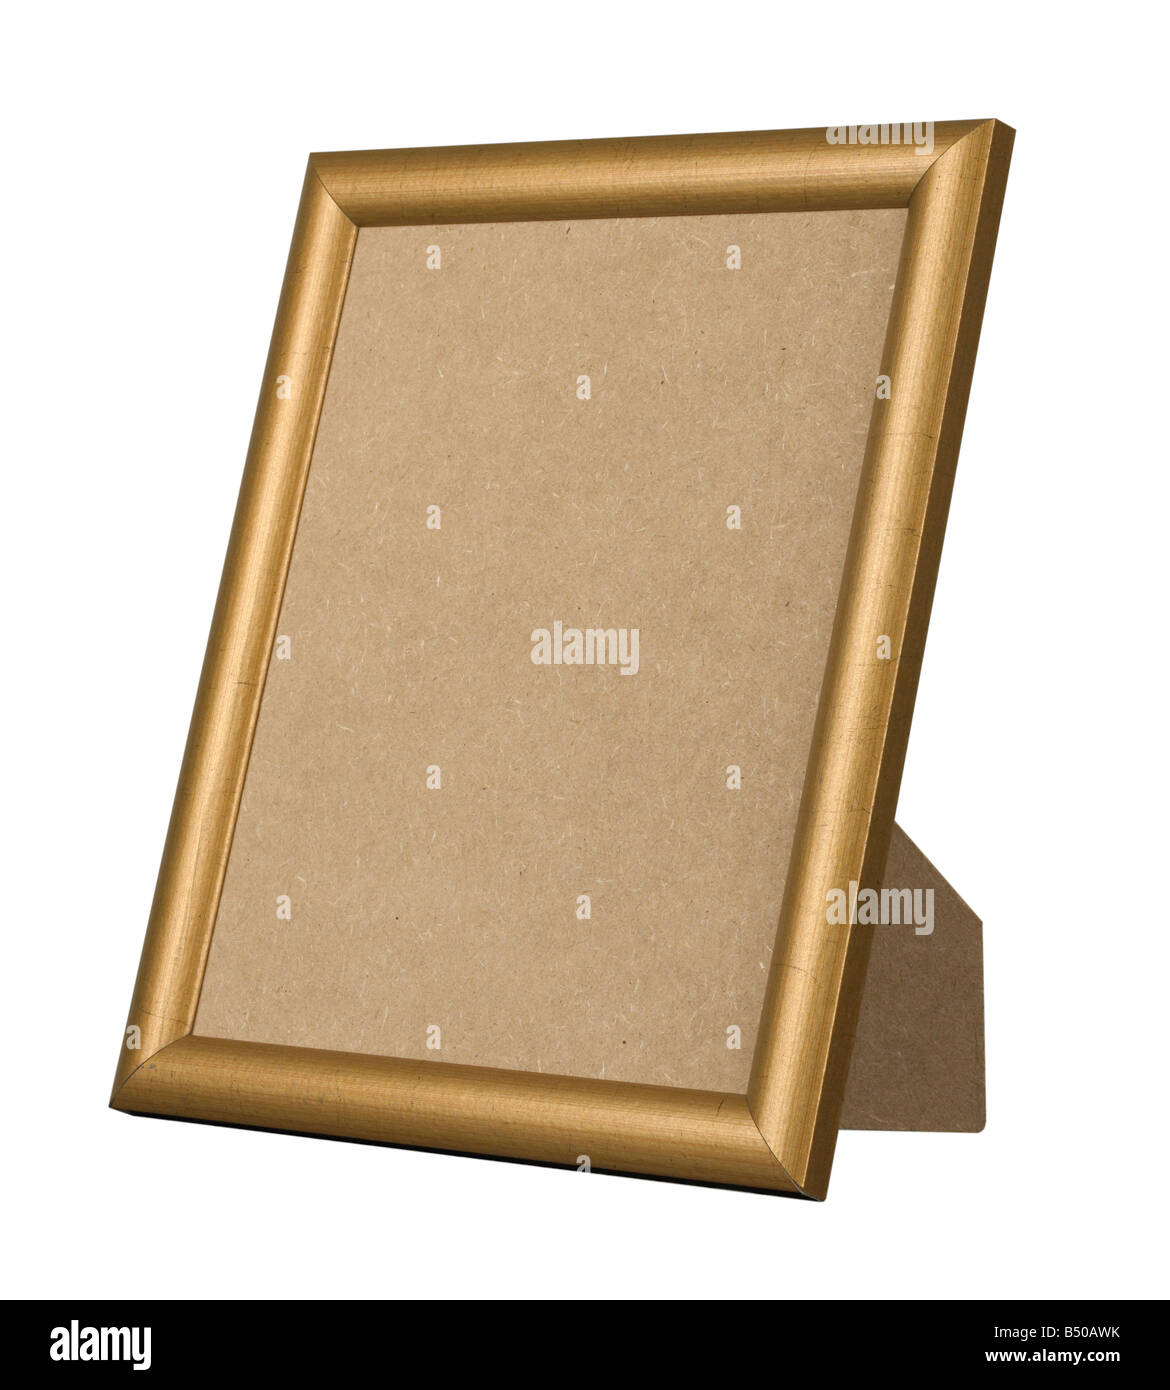 picture frame gold gilt wood stand standing stock photo 20292207 alamy. Black Bedroom Furniture Sets. Home Design Ideas